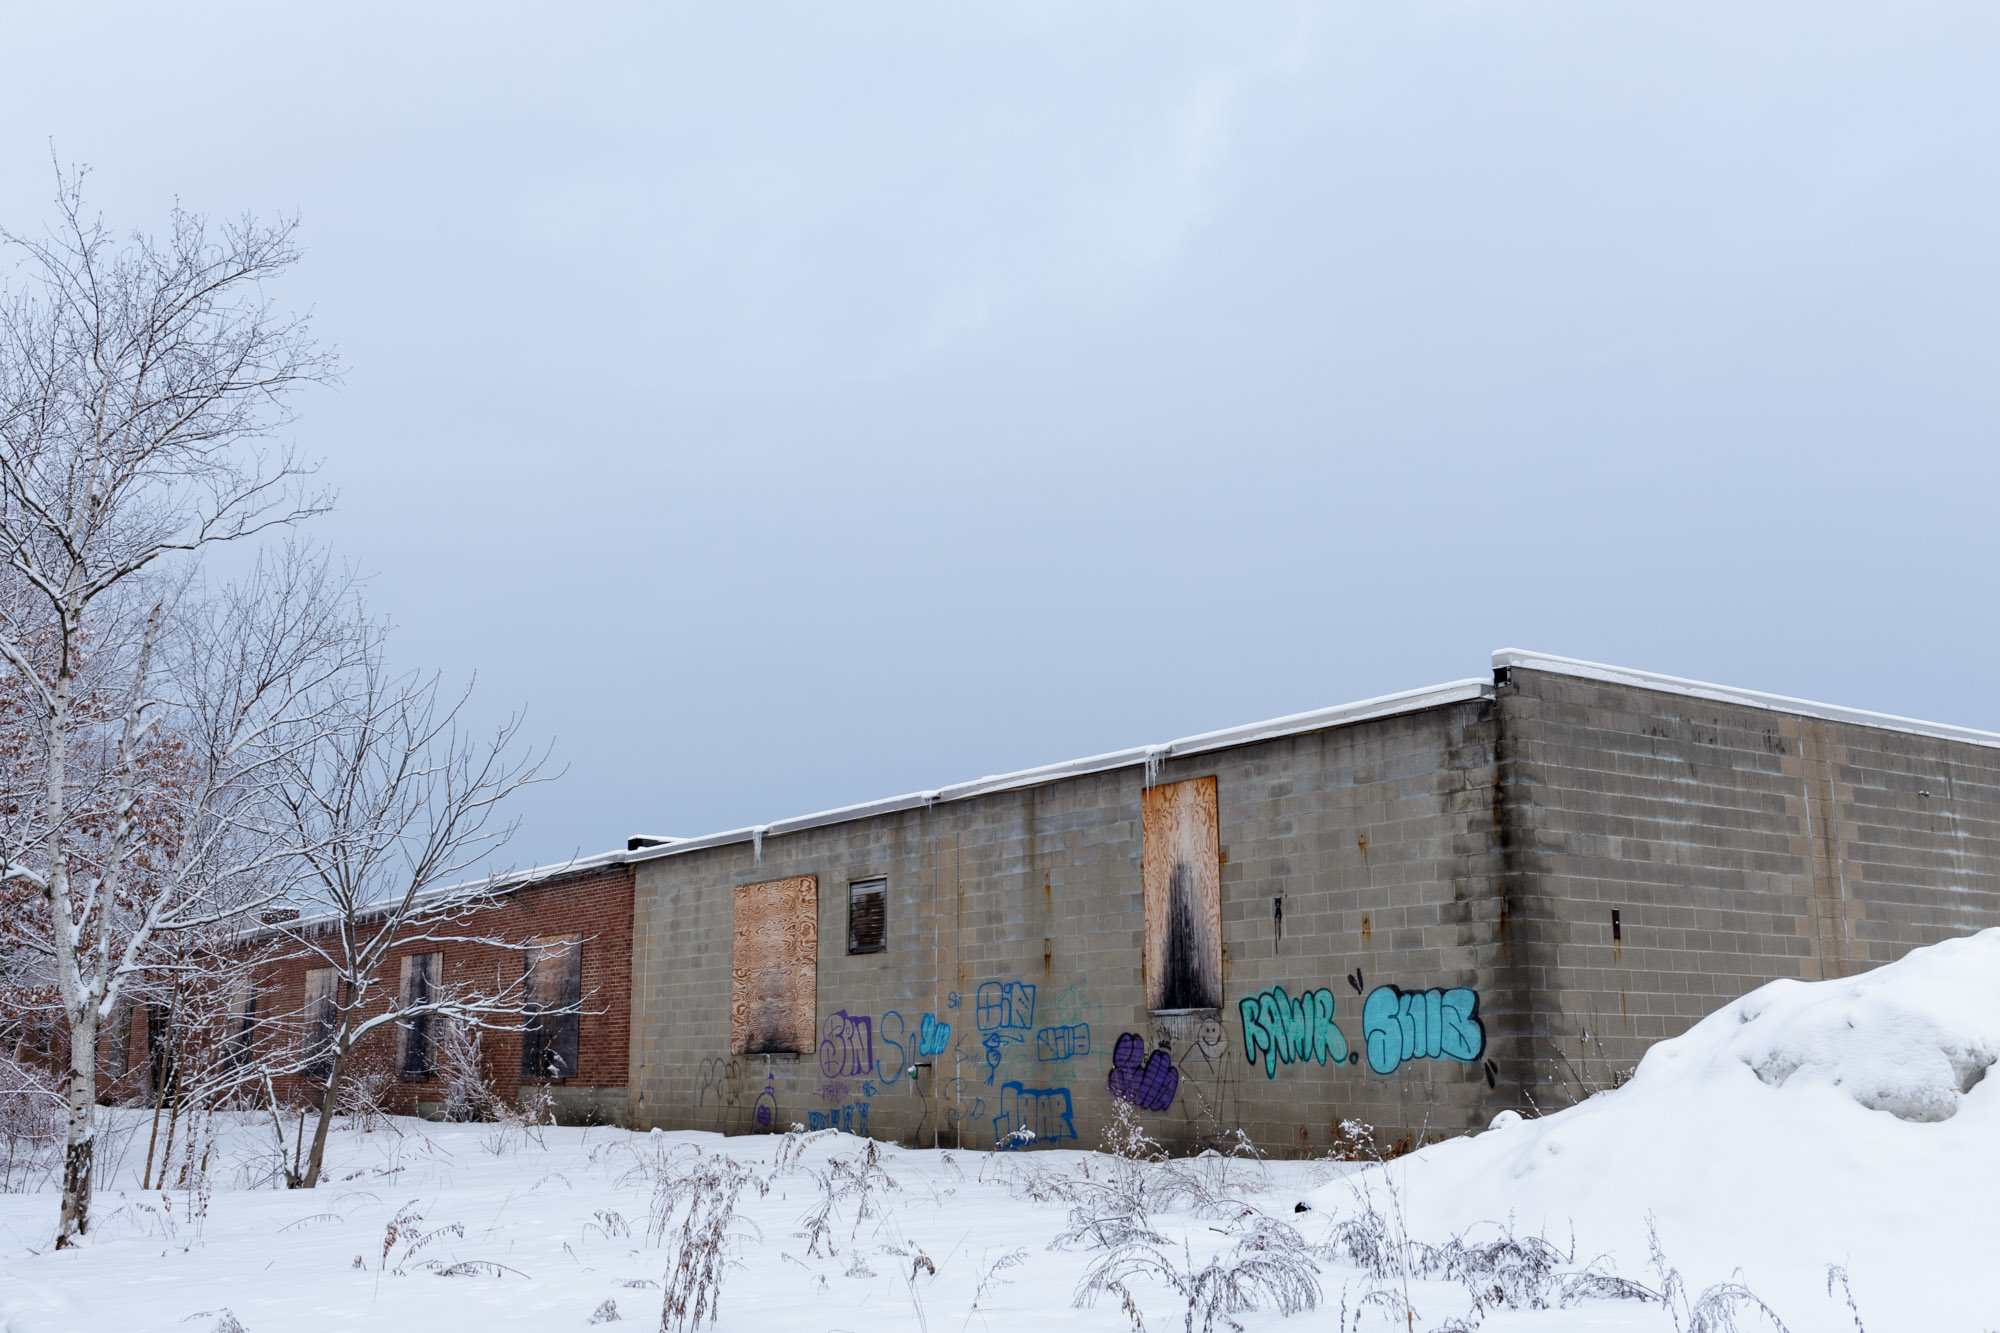 Graffiti, Building, Snow, and Sky